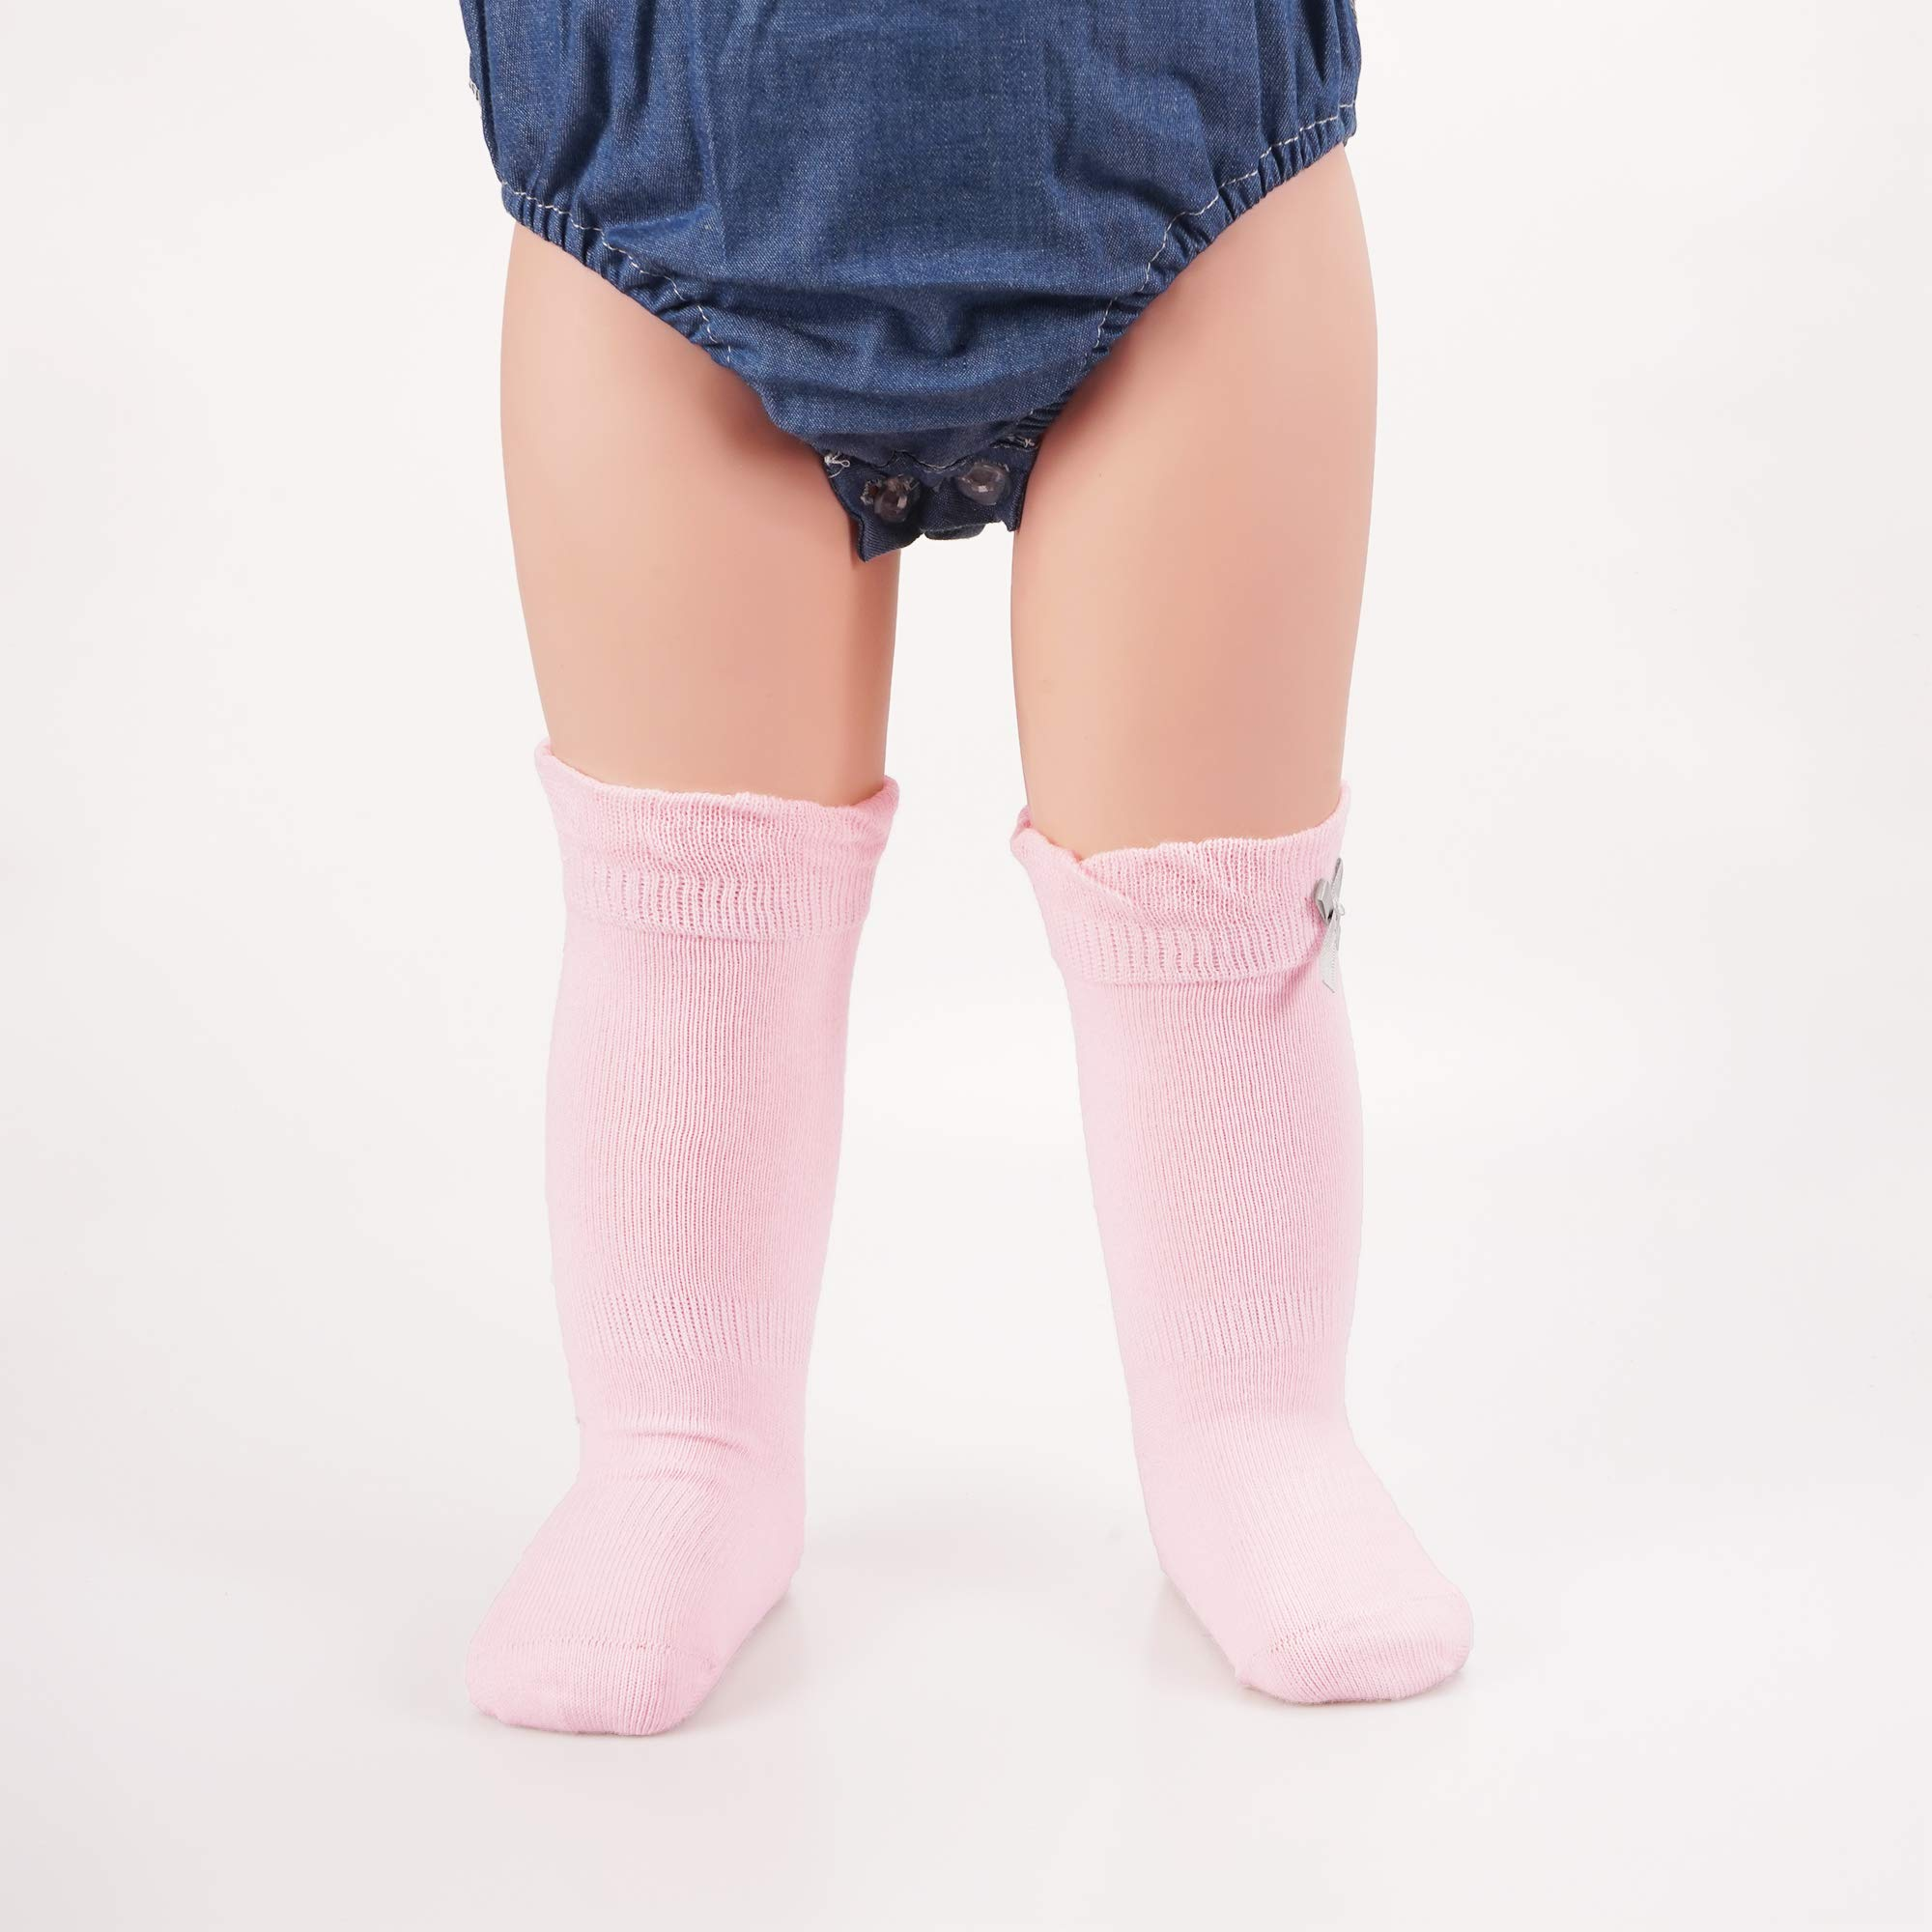 Baby Girls Boys Cotton Uniform Knee High Socks Tube Ruffled Stockings (Assorted 6 Pack-Solid Color, 2-4T)